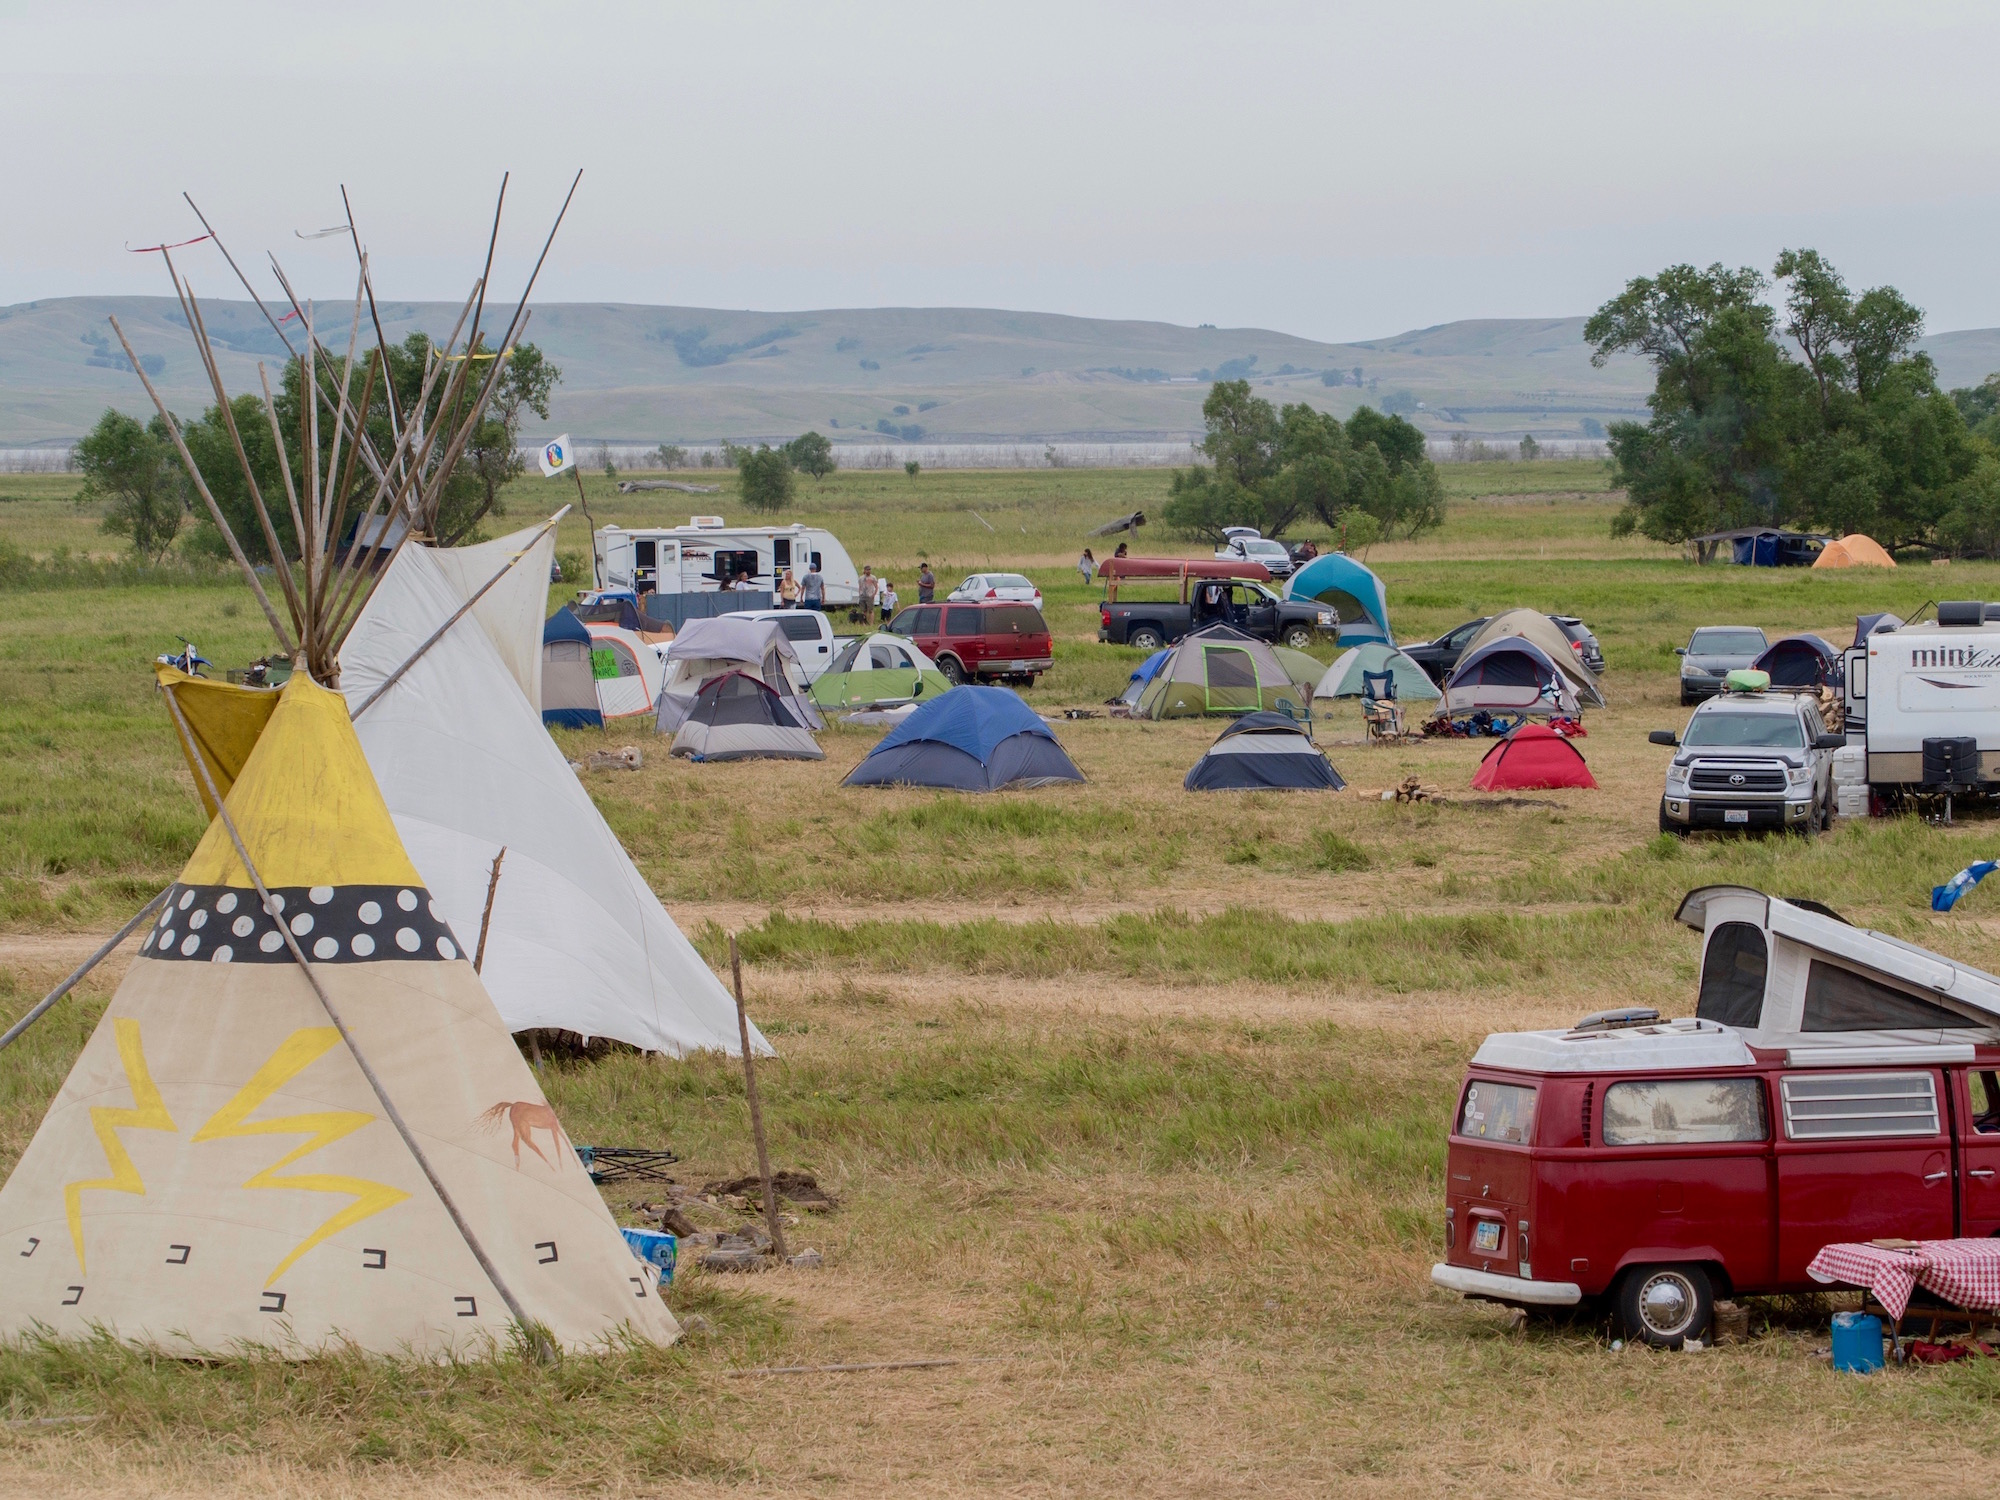 Terri Miles: An 'information point' at the #NoDAPL encampment